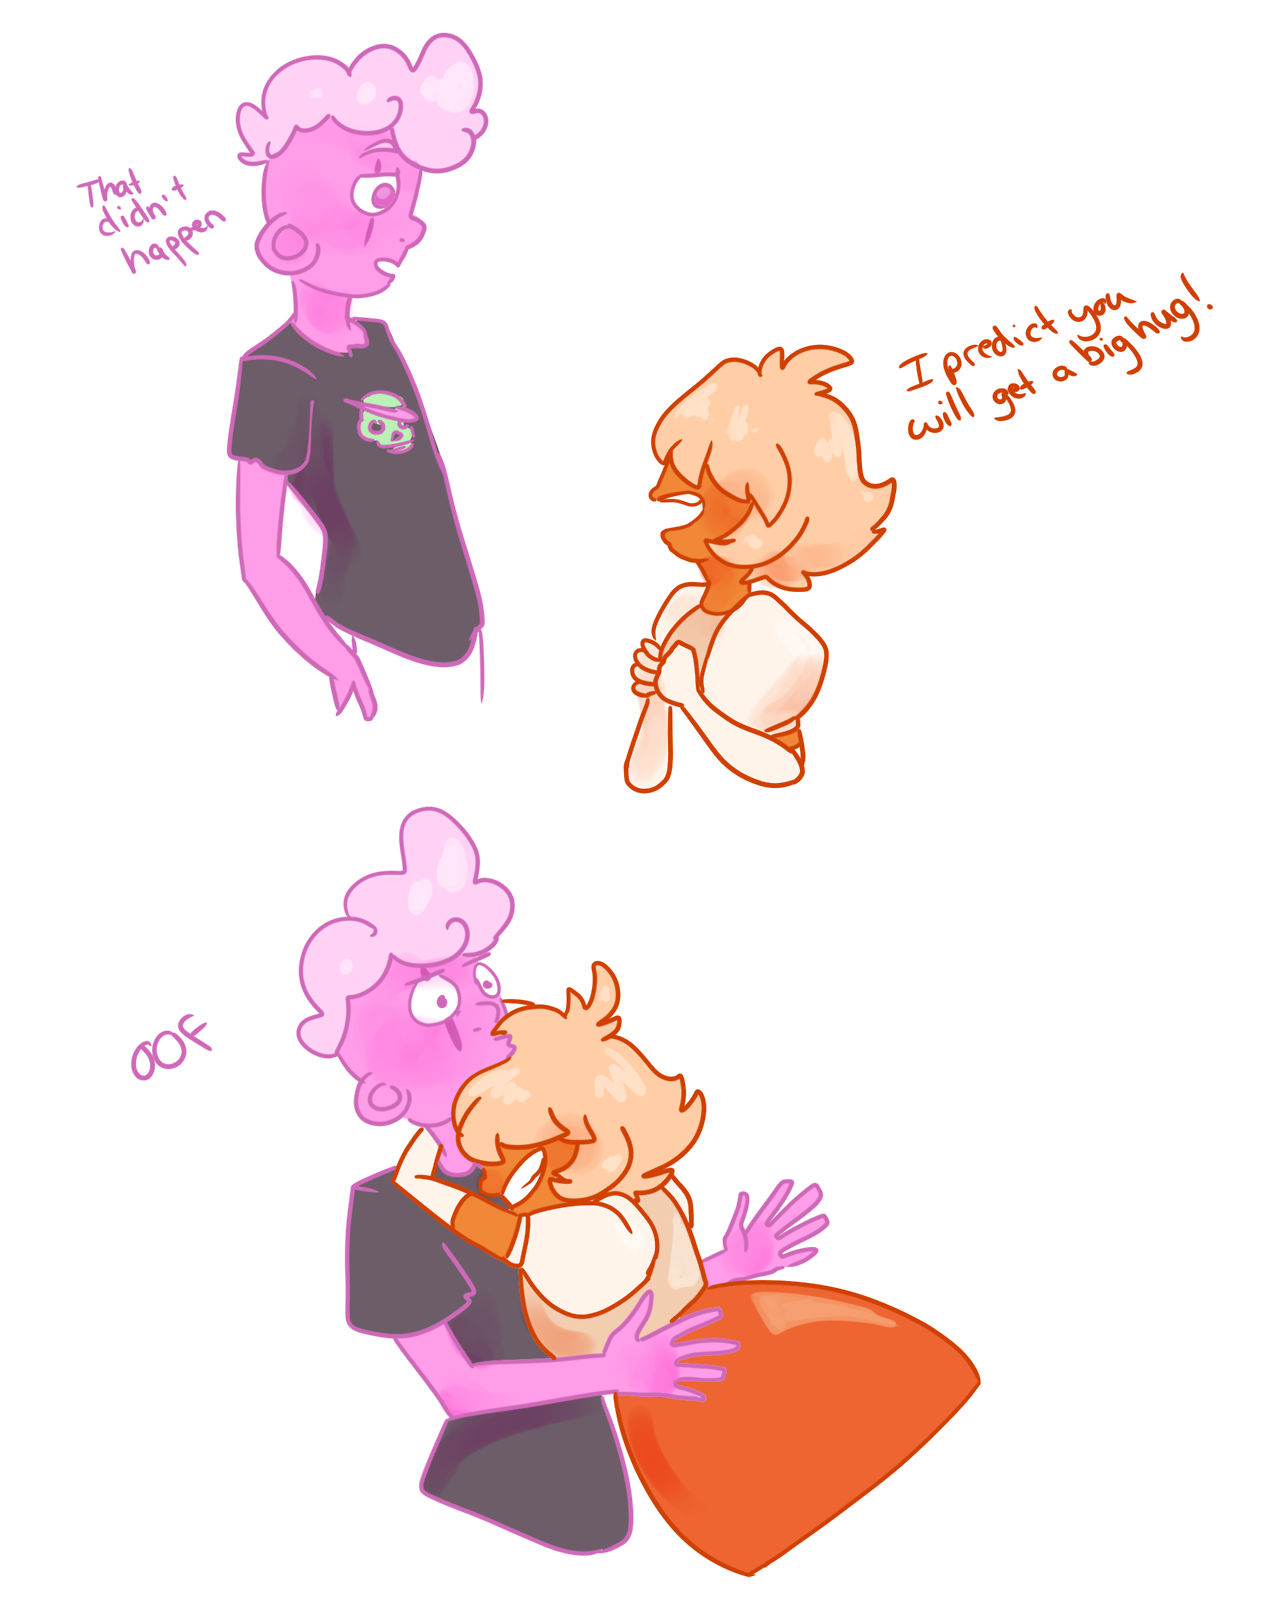 i…. i love paddlefish and cottoncandy. honeslty though Pad is so cute, i couldnt help but smile every time she opened her mouth. what a good gem. (if you like please reblog!)